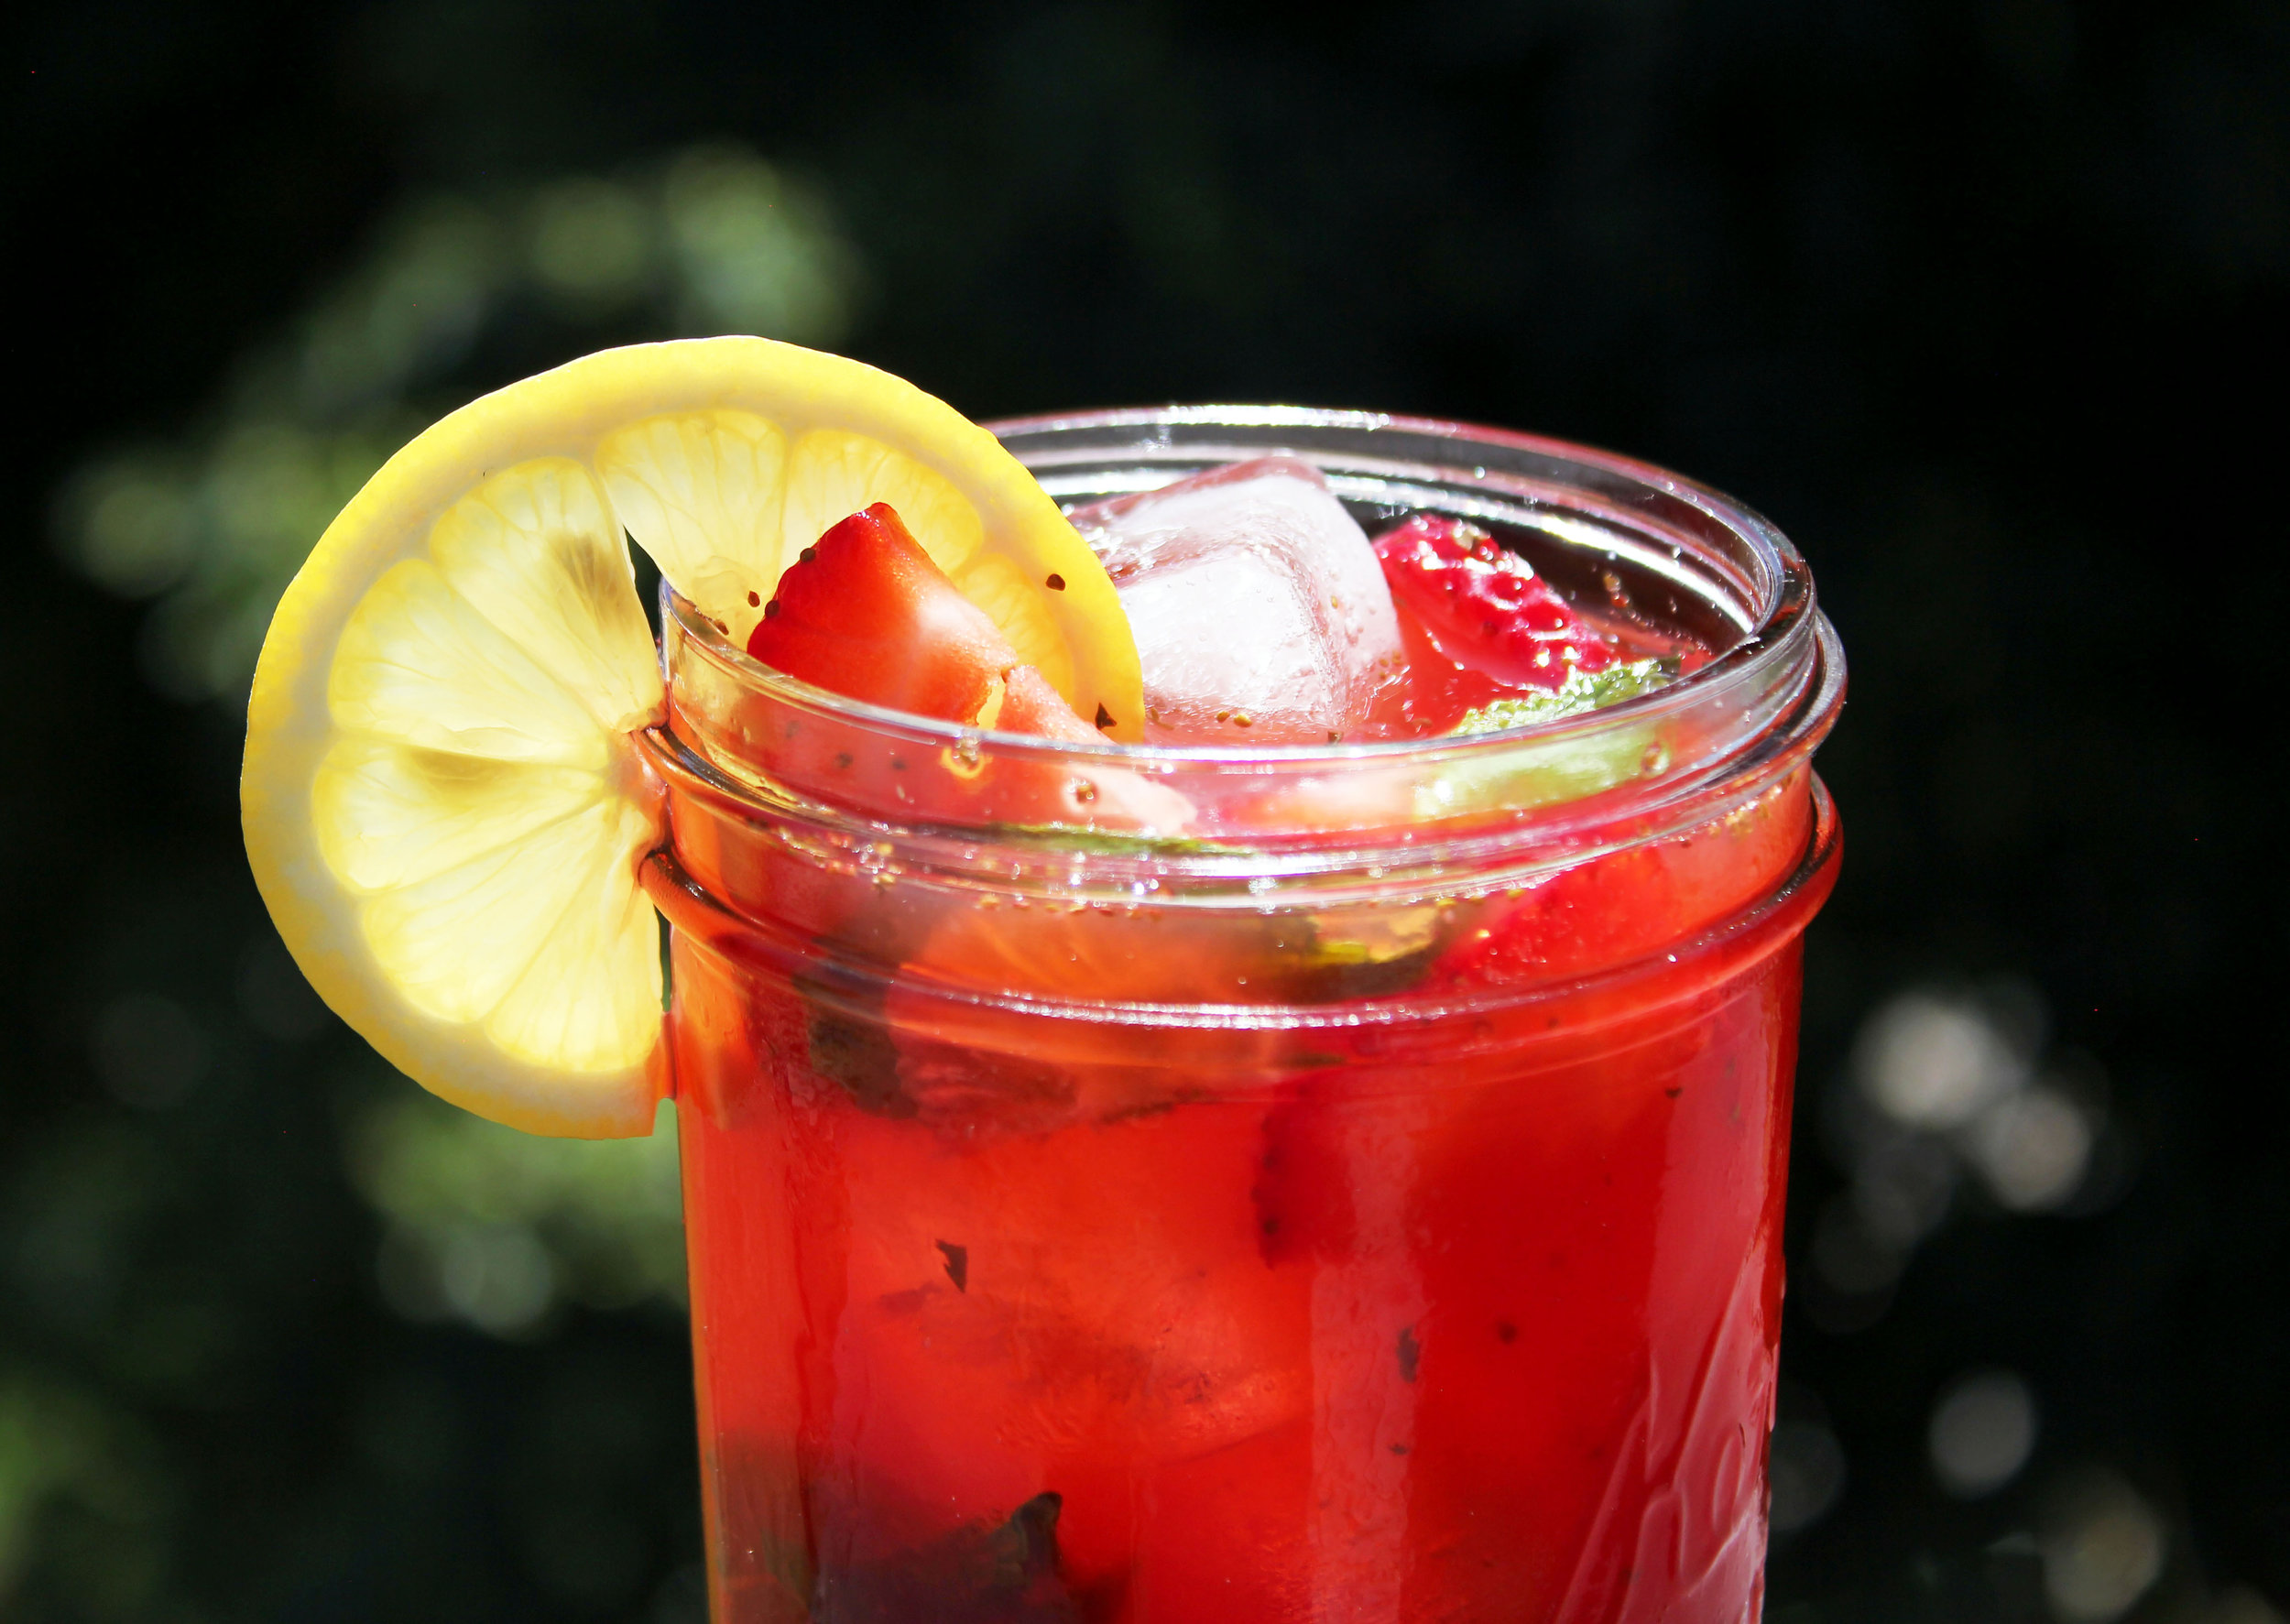 Strawberry Lemonade Glass 1.jpg